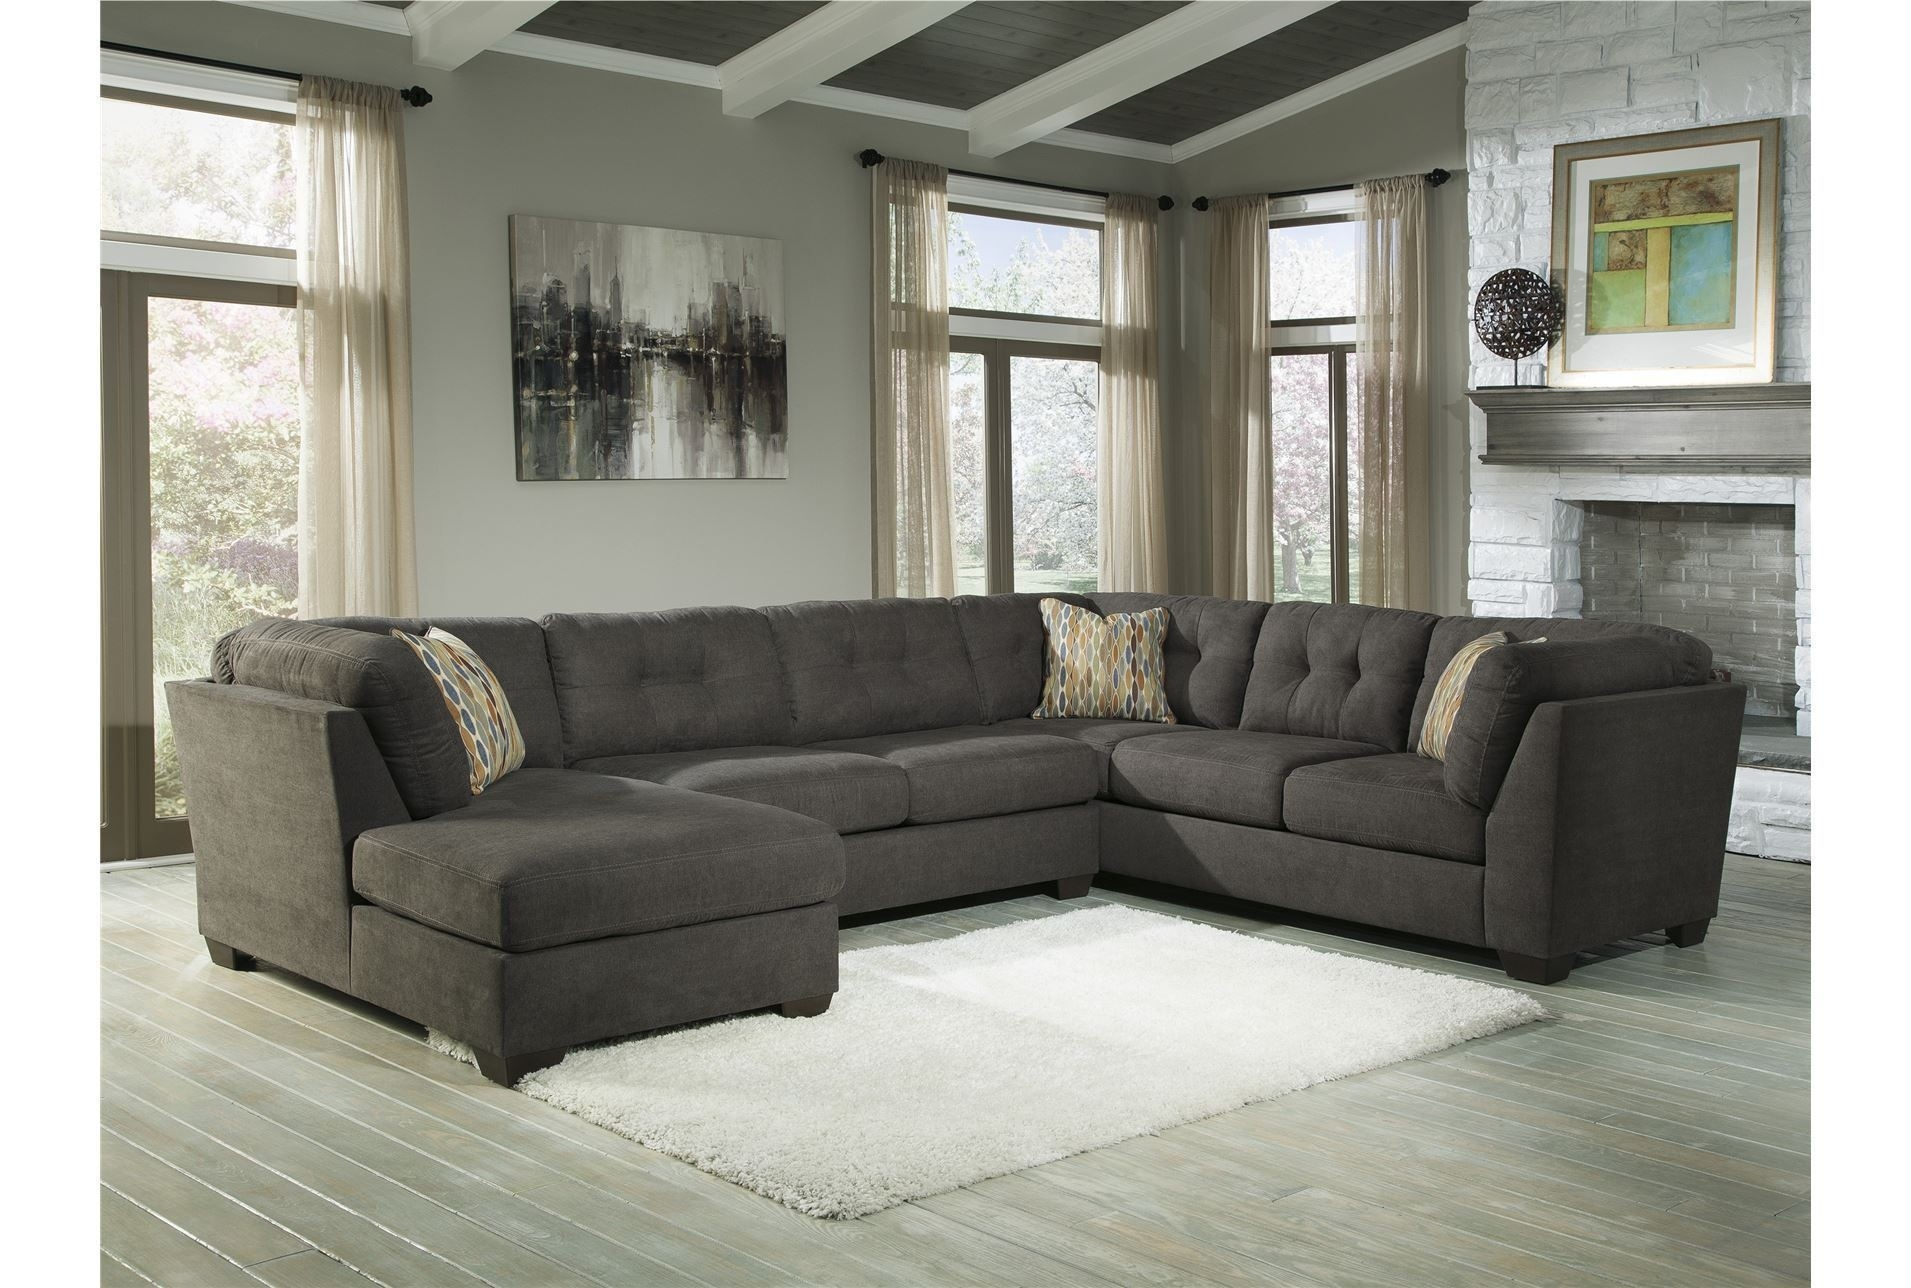 Location Chaise Option Inside Norfolk Chocolate 3 Piece Sectionals With Raf Chaise (Image 15 of 25)